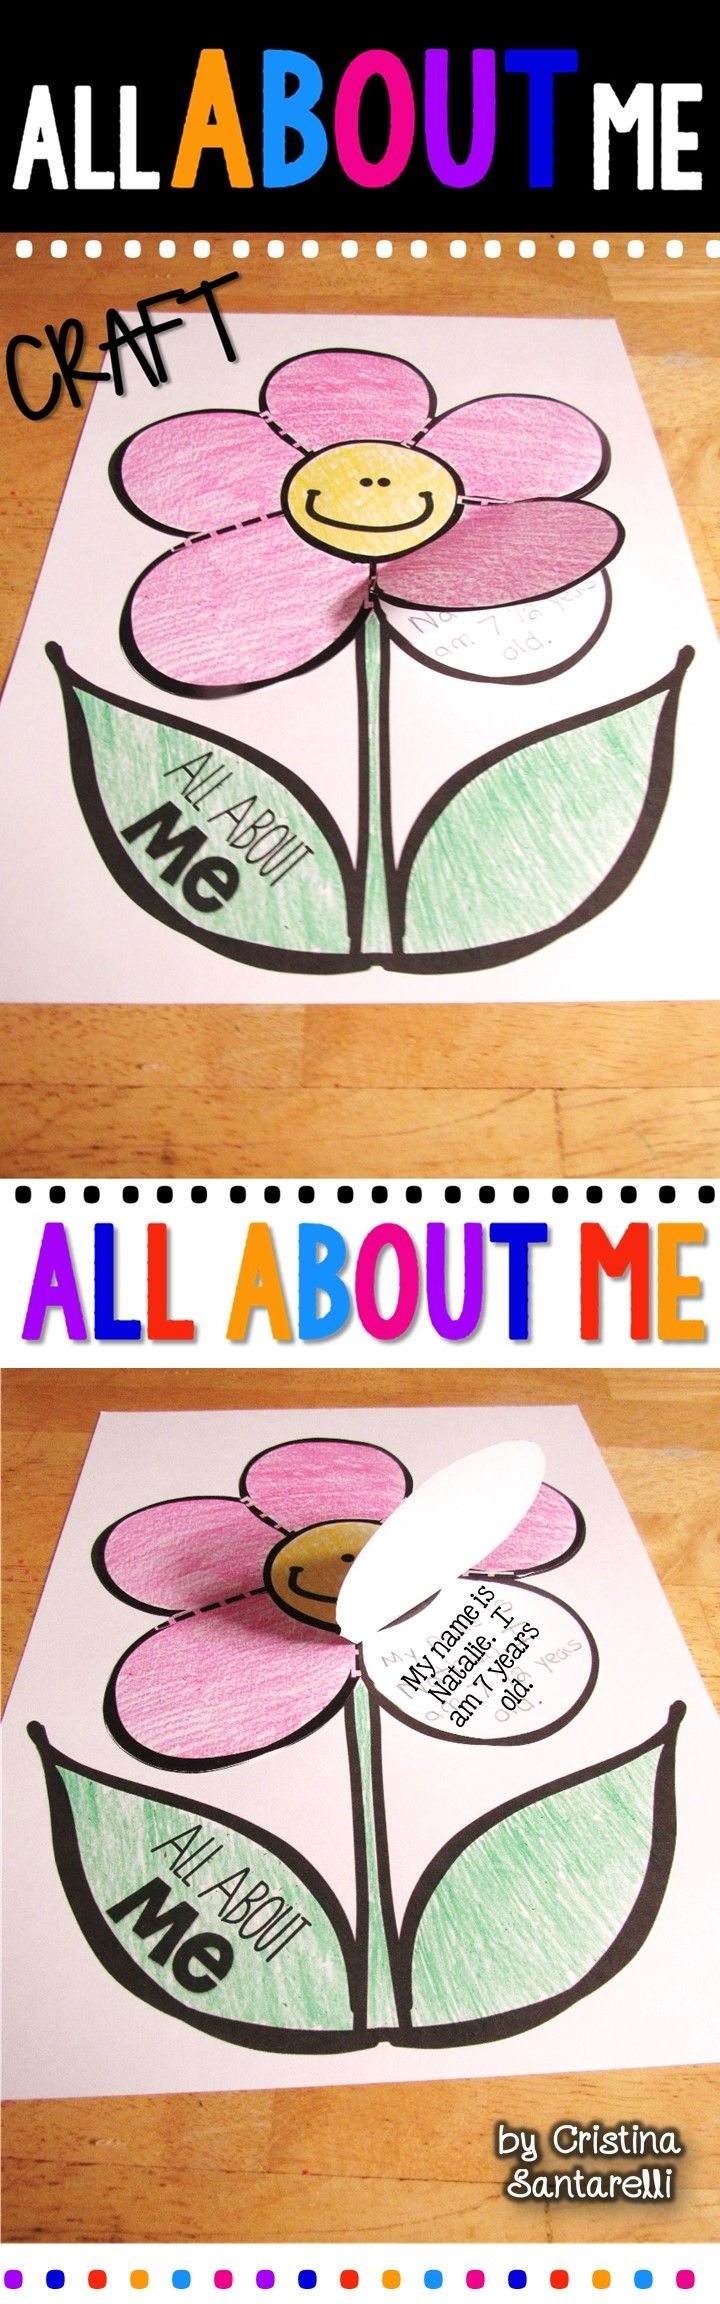 Freebie! All About Me Craft!  In this All about me craft, your little ones can write or draw facts about themselves underneath each flower petal flap.